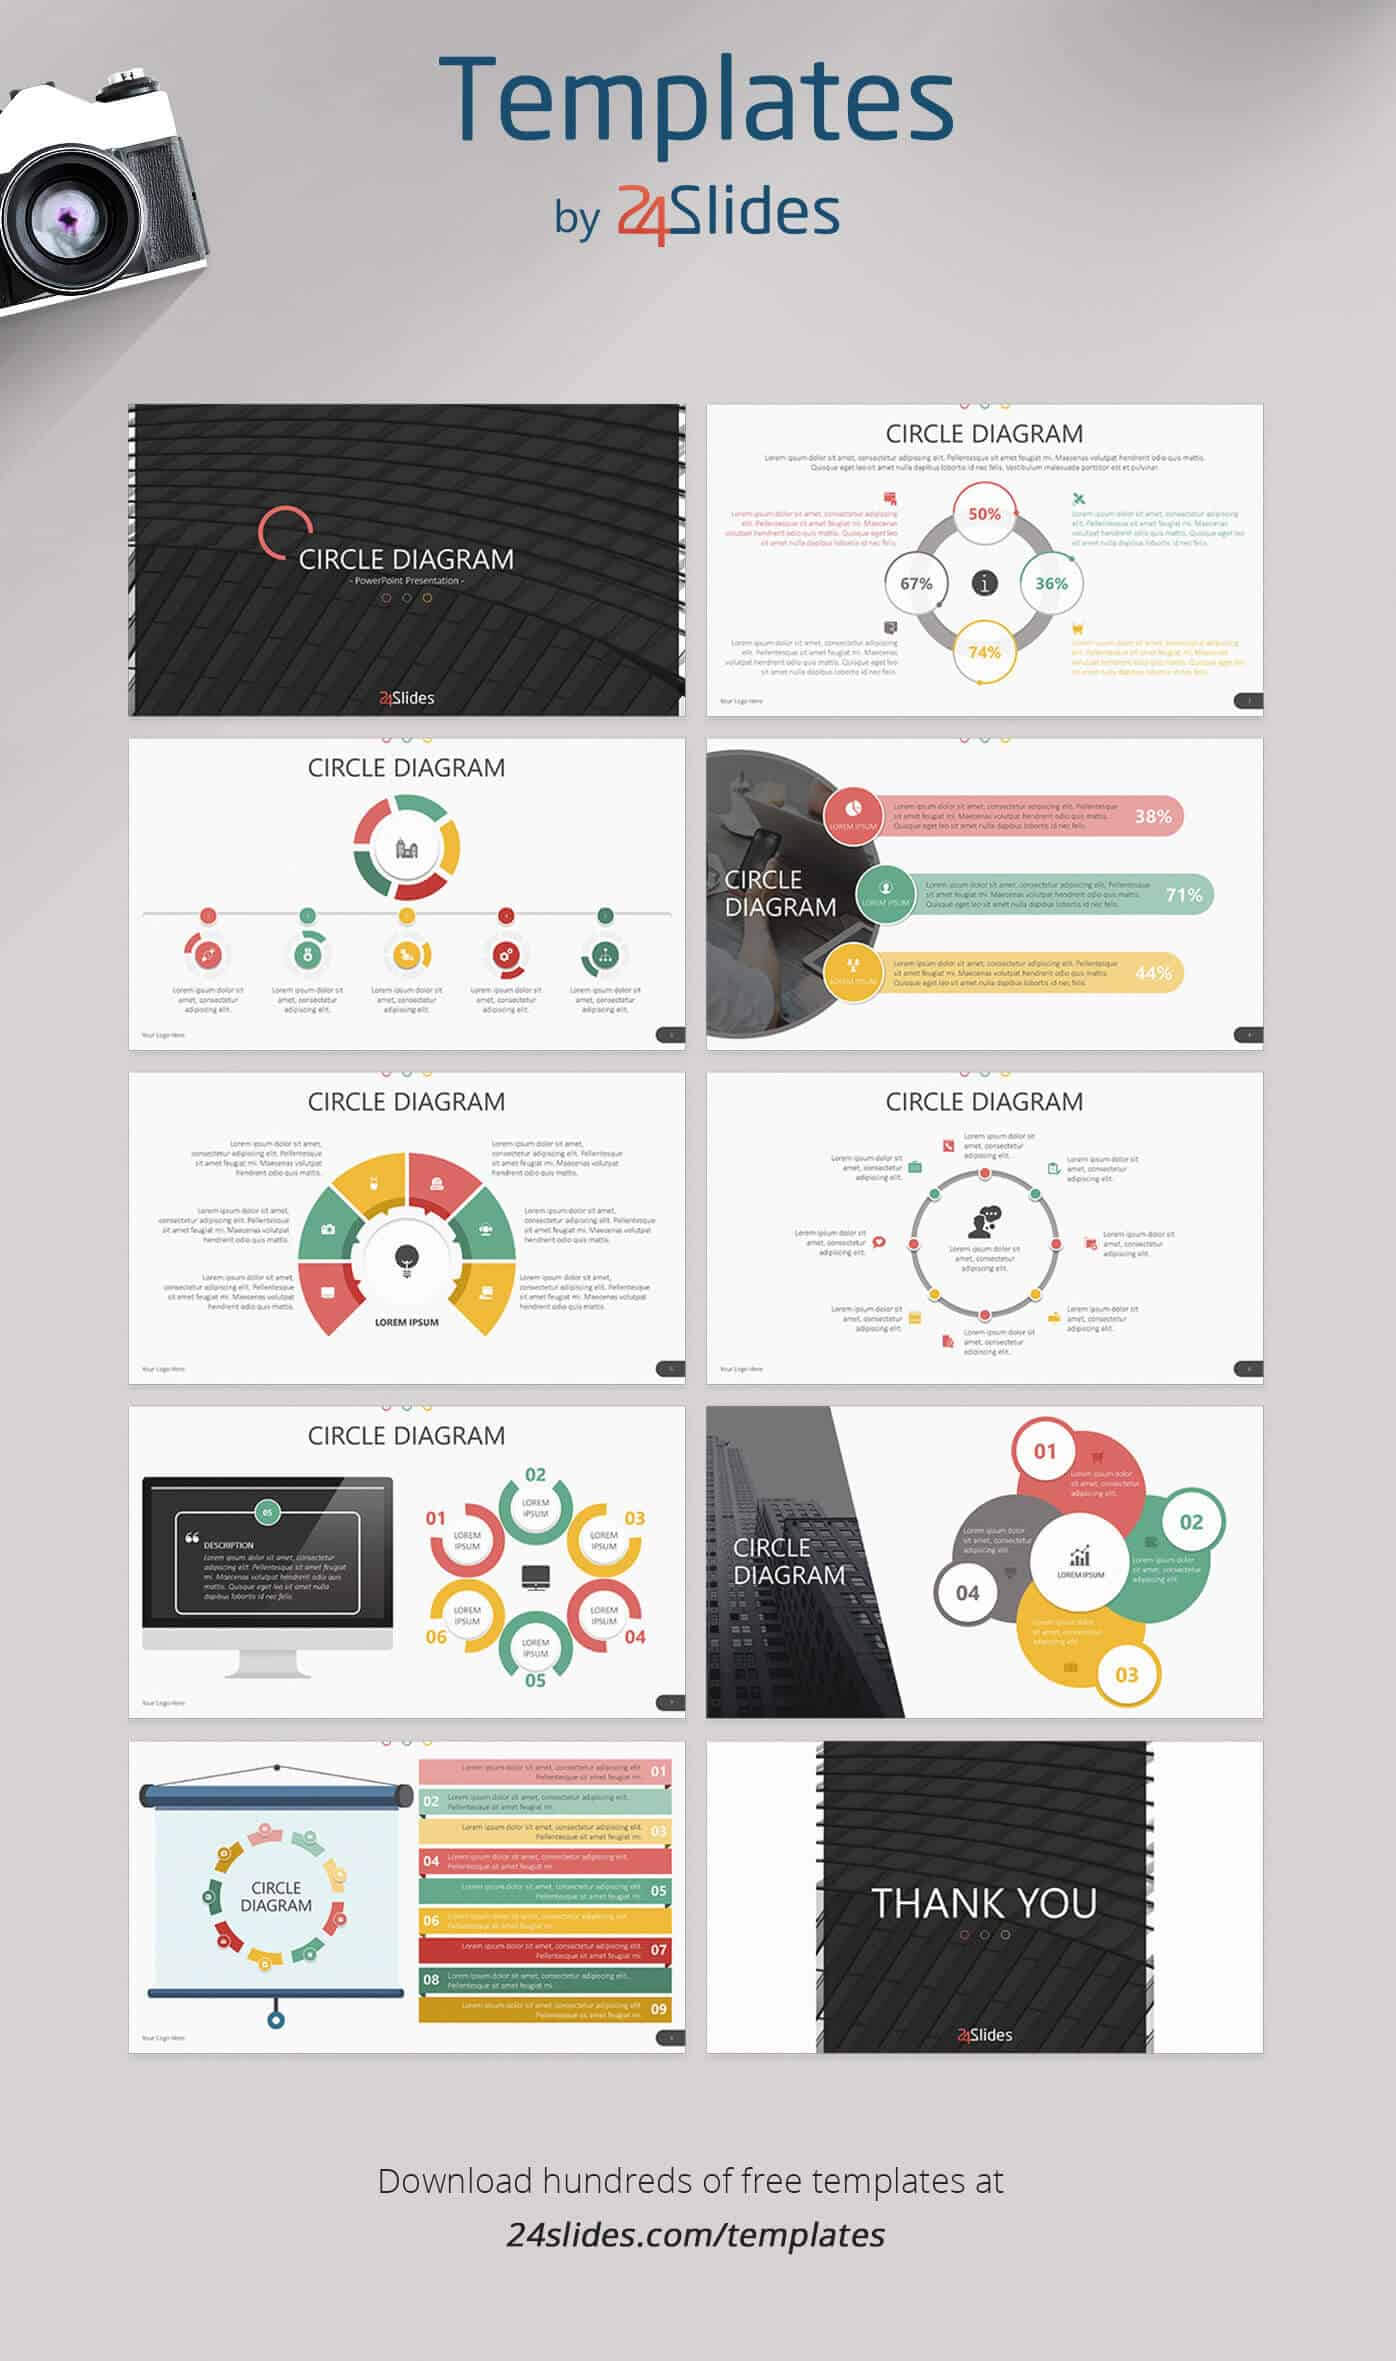 15 Fun And Colorful Free Powerpoint Templates | Present Better Throughout Powerpoint Slides Design Templates For Free